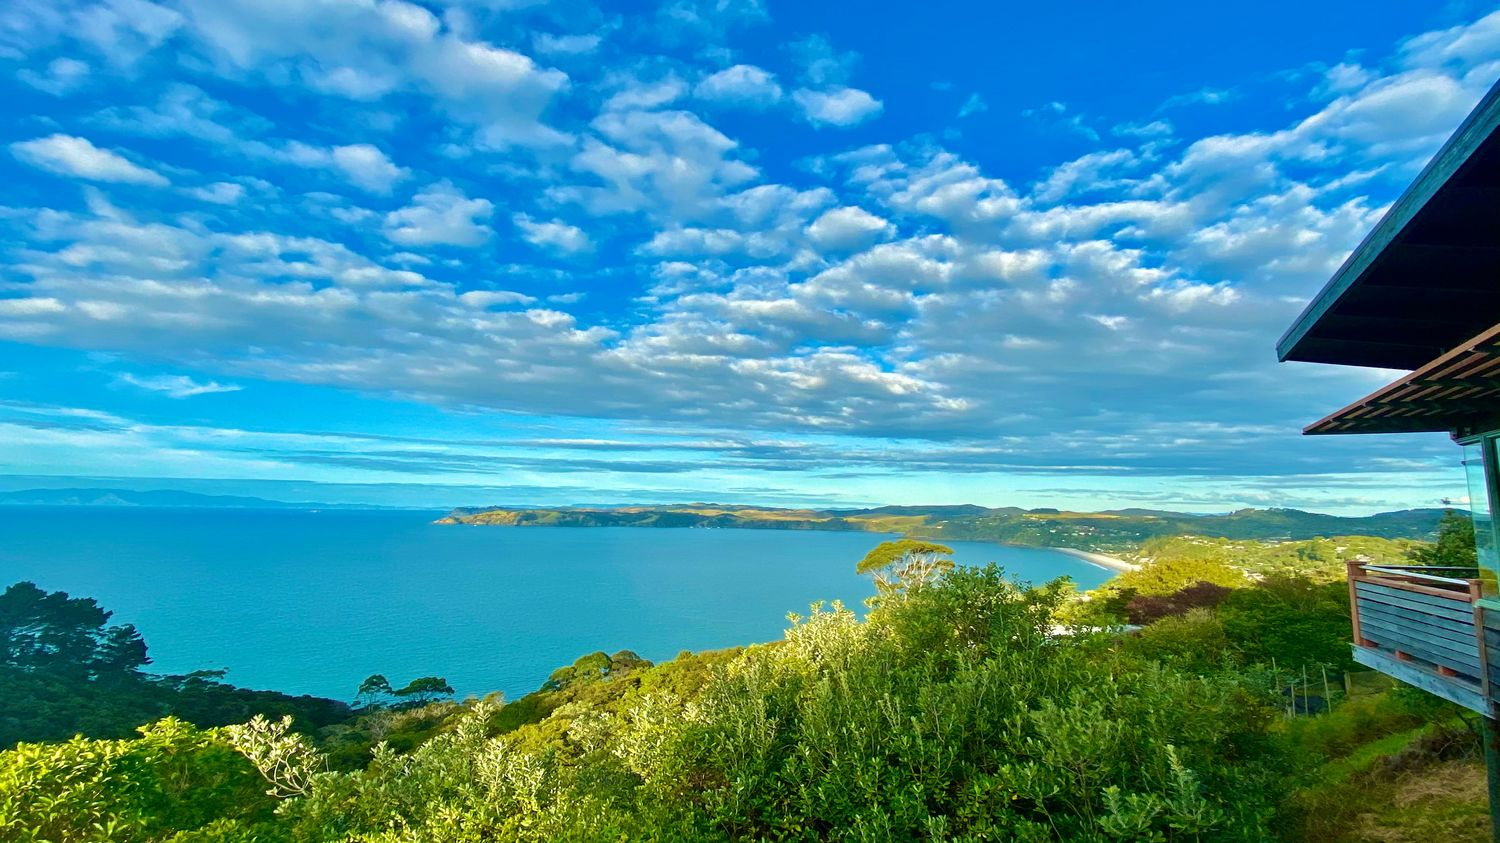 10._Seaview_exterior_with_vista_over_Onetangi_and_gorgeous_clouds_1500x843.jpeg